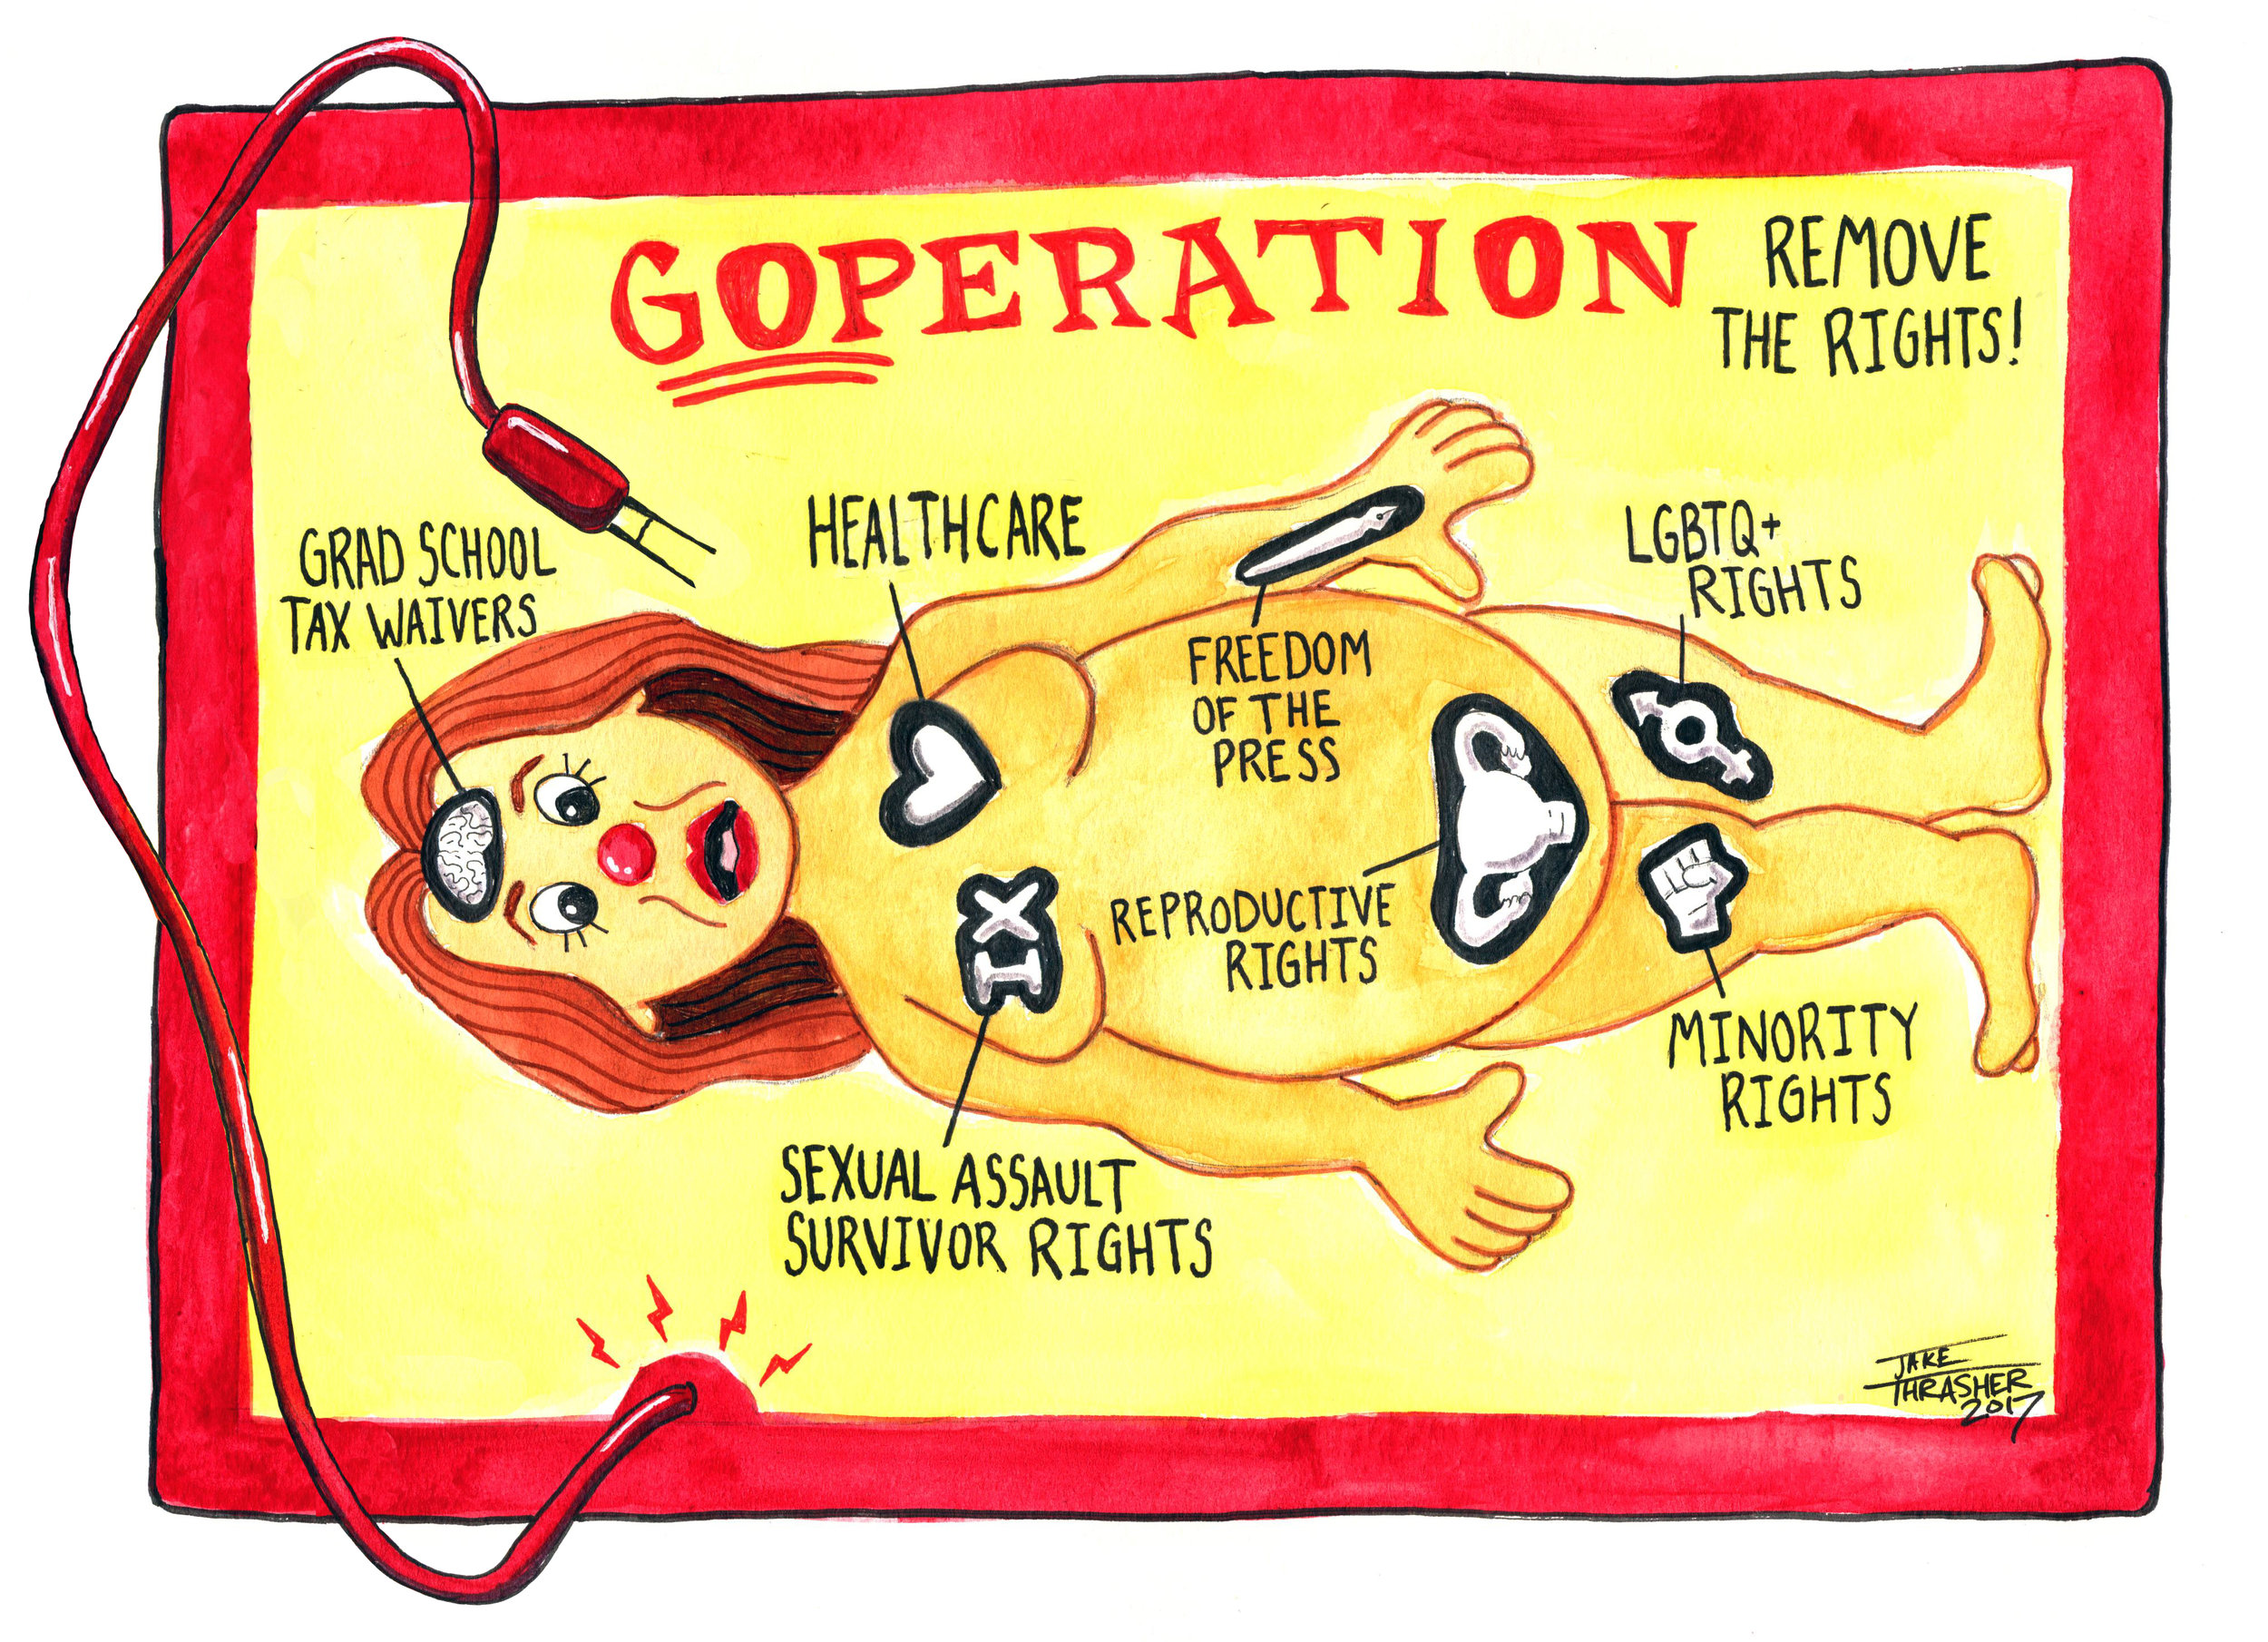 GOPeration (The DM Online) by Jake Thrasher